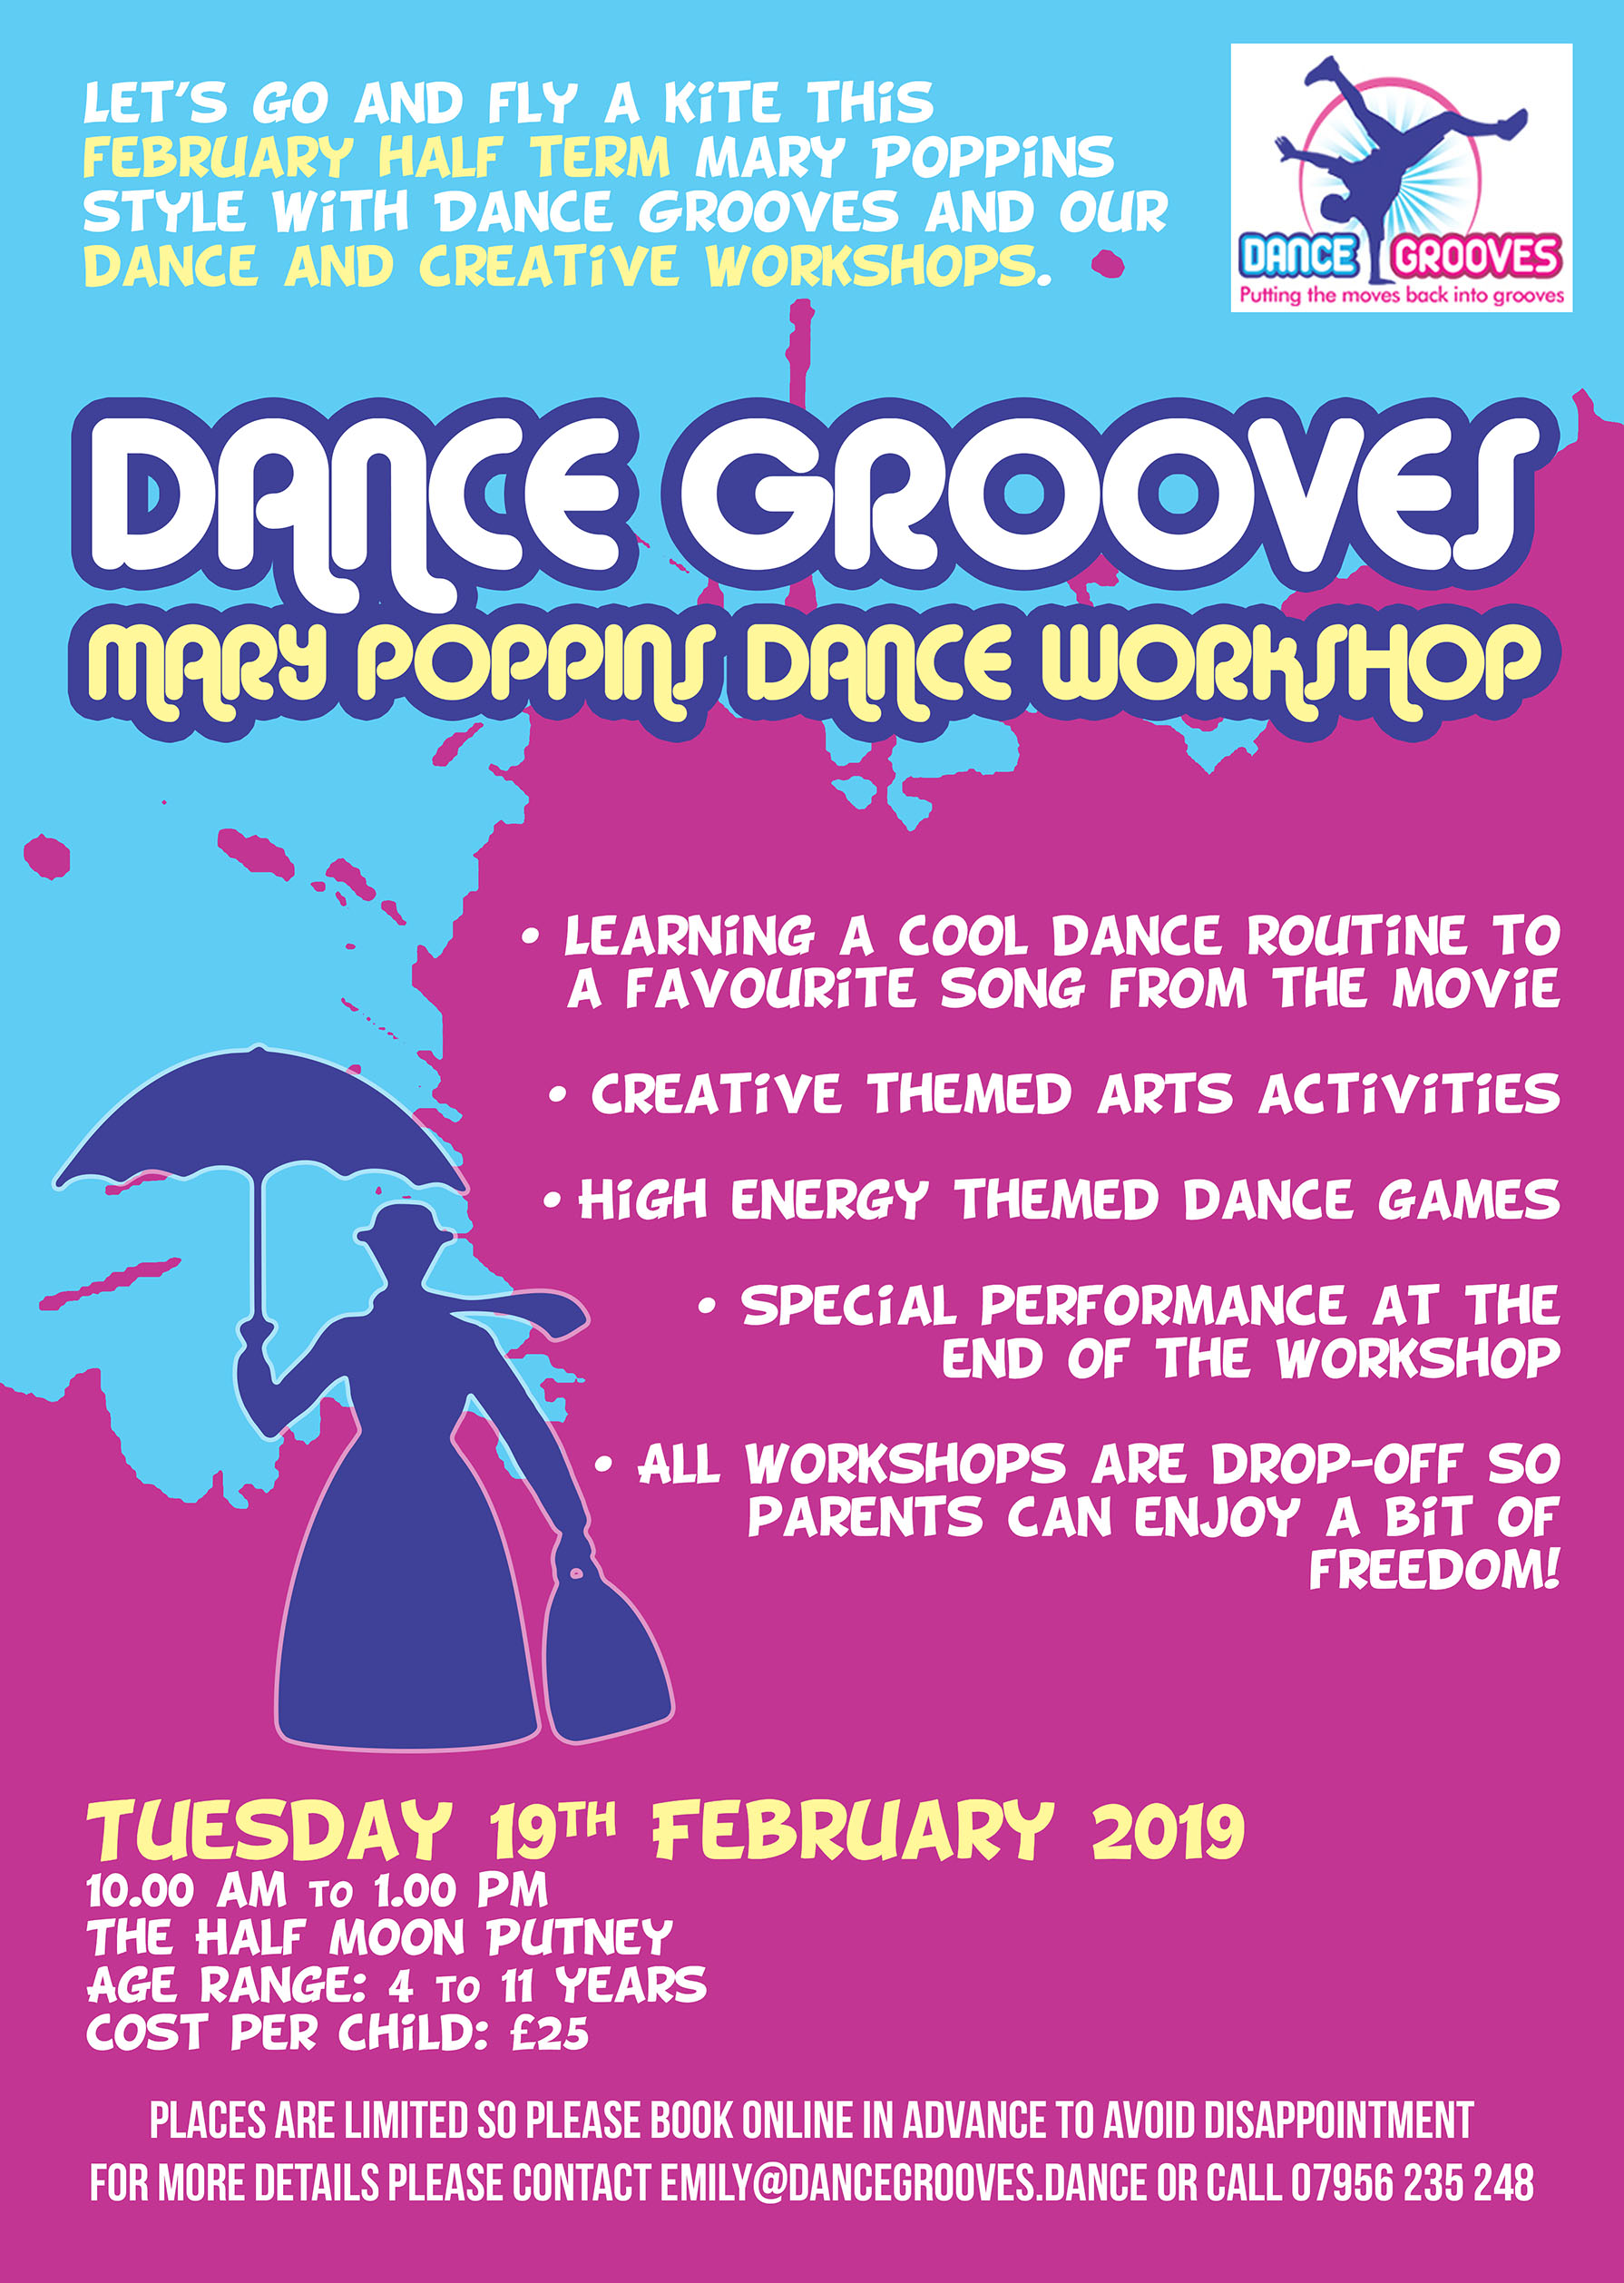 Mary Poppins themed Dance & Creative Half Term Workshop at